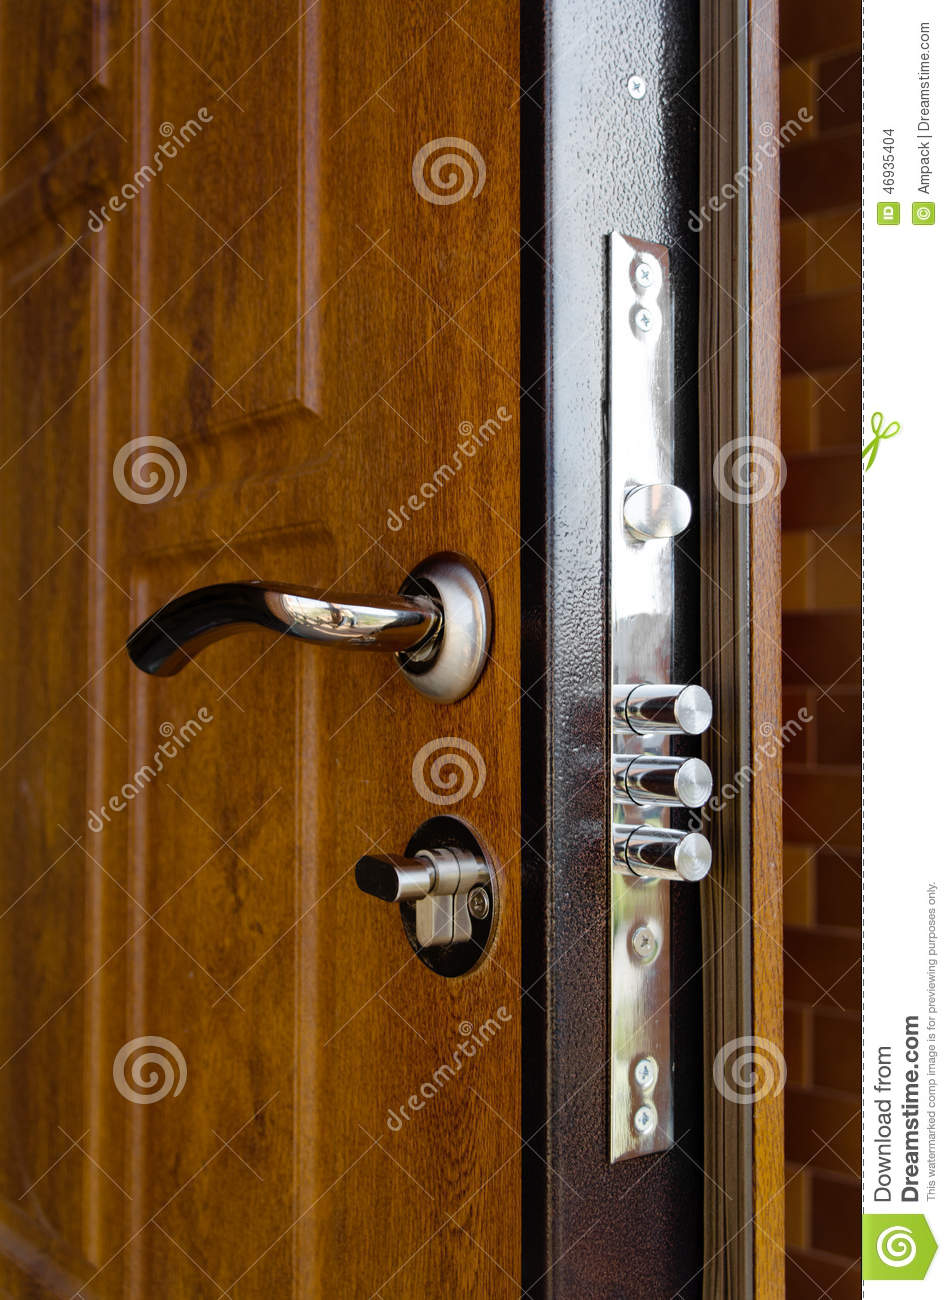 Triple Cylinders On A New High Security Lock Stock Photo Image 46935404